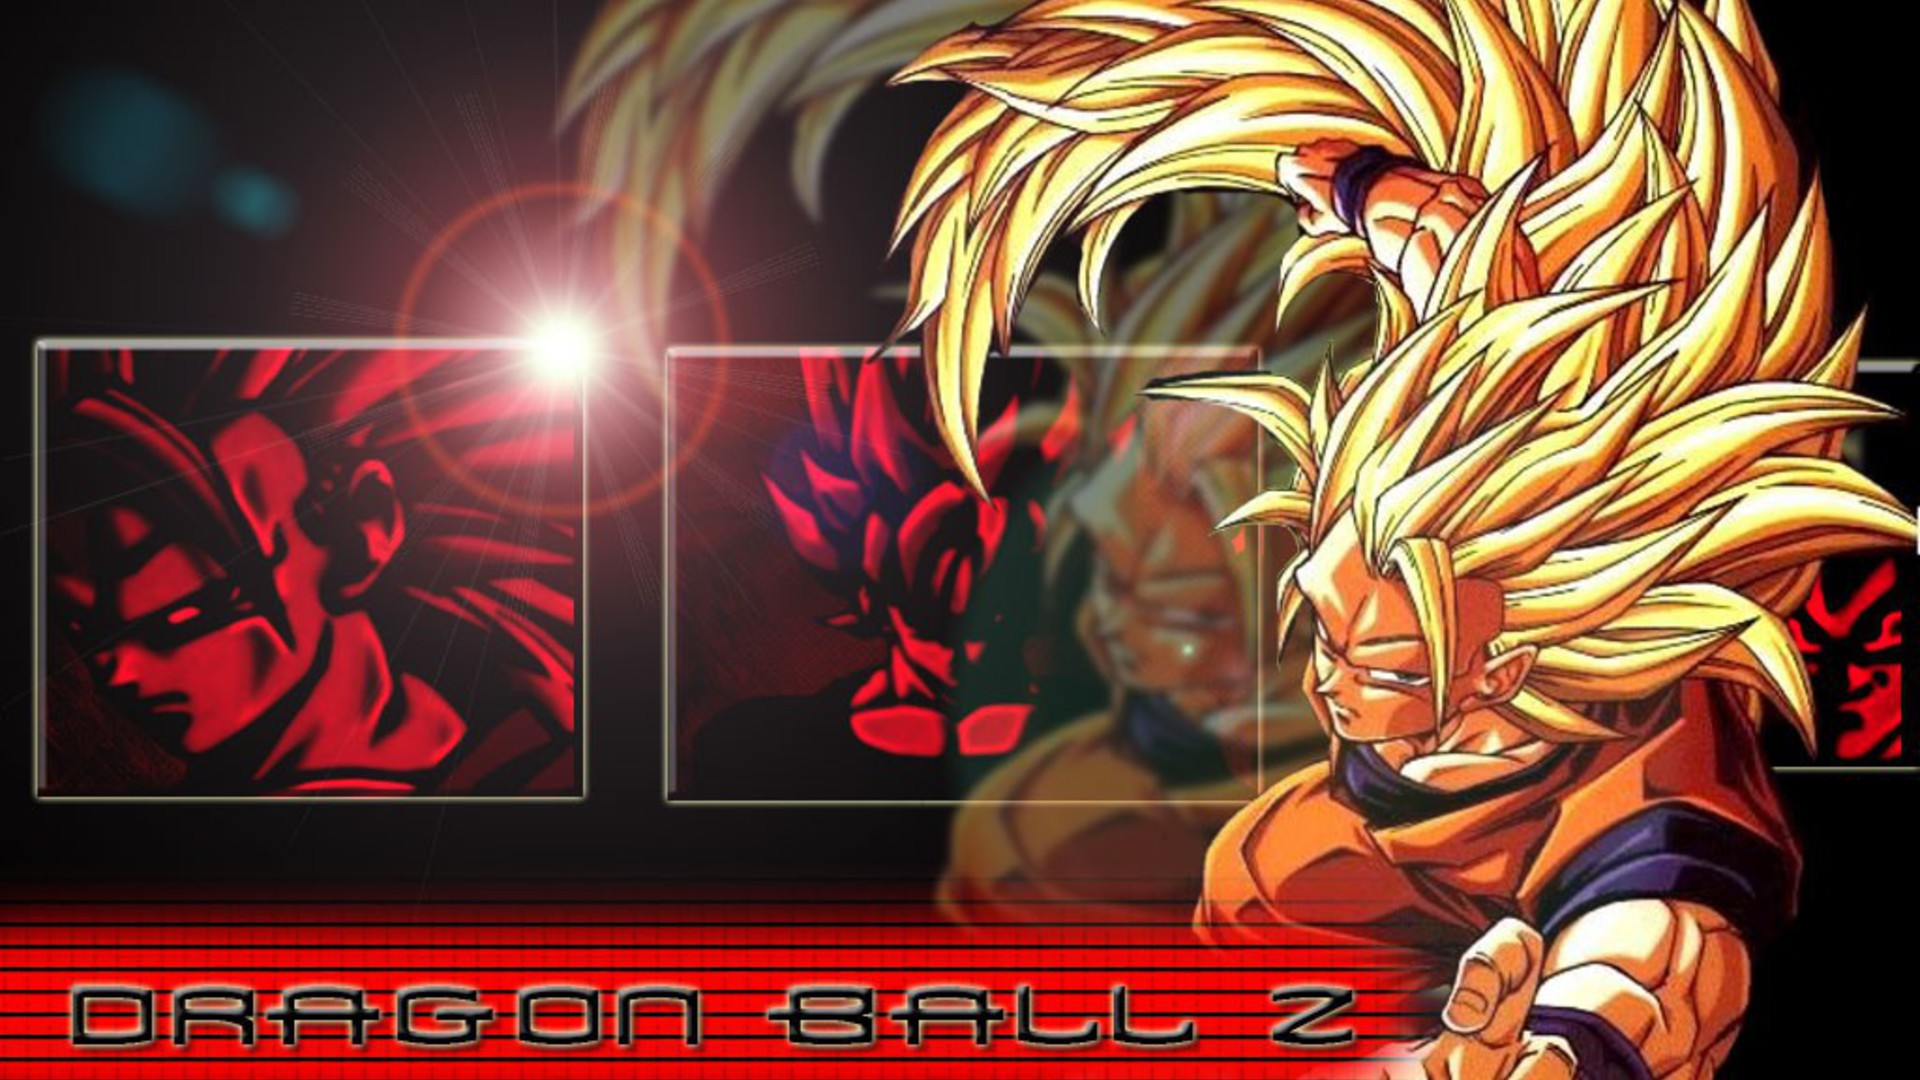 Son goku dragon ball z ssj wallpaper | AllWallpaper.in ...